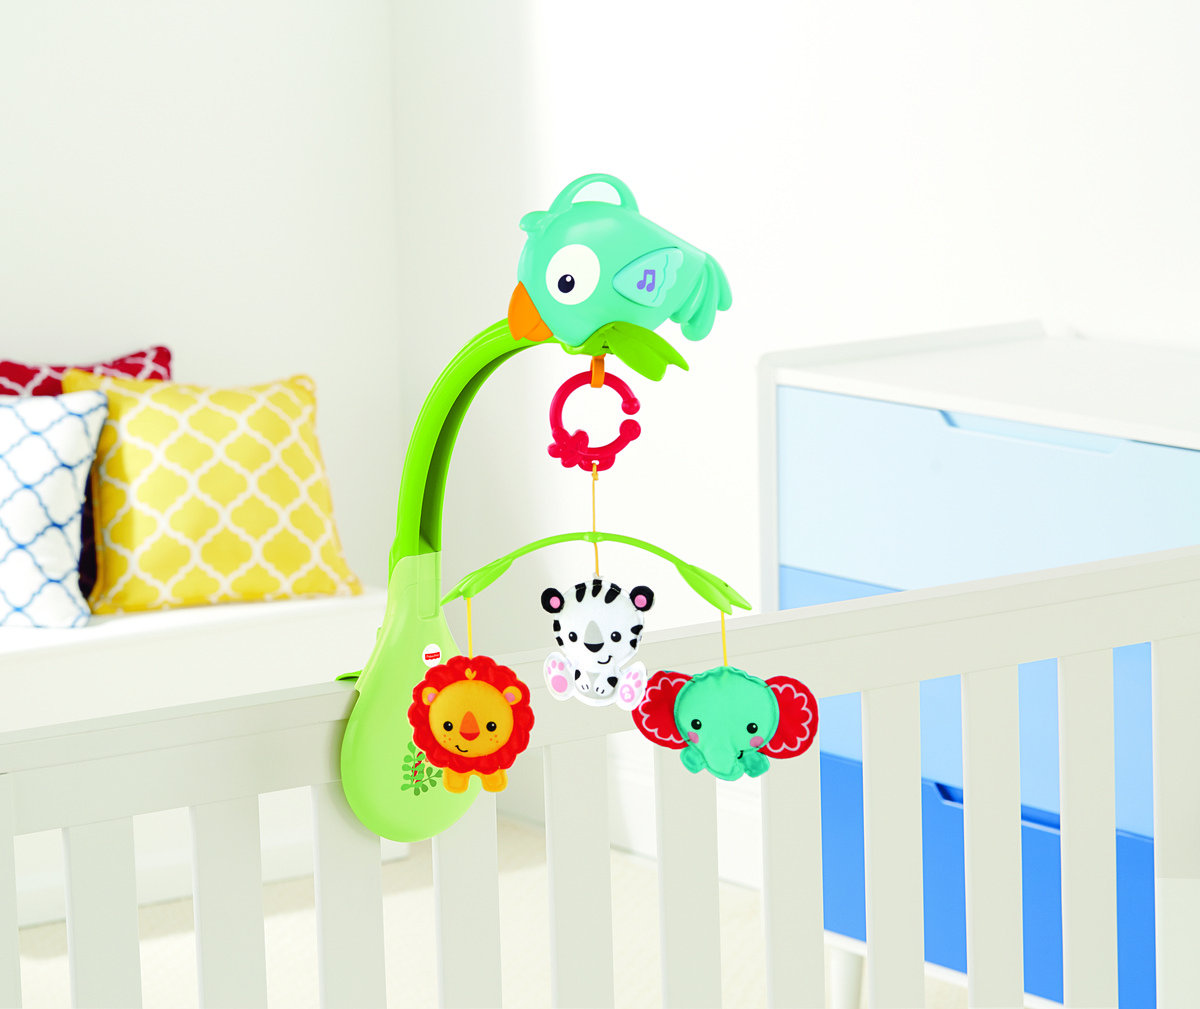 RAINFOREST FRIENDS 3-in-1 mobile